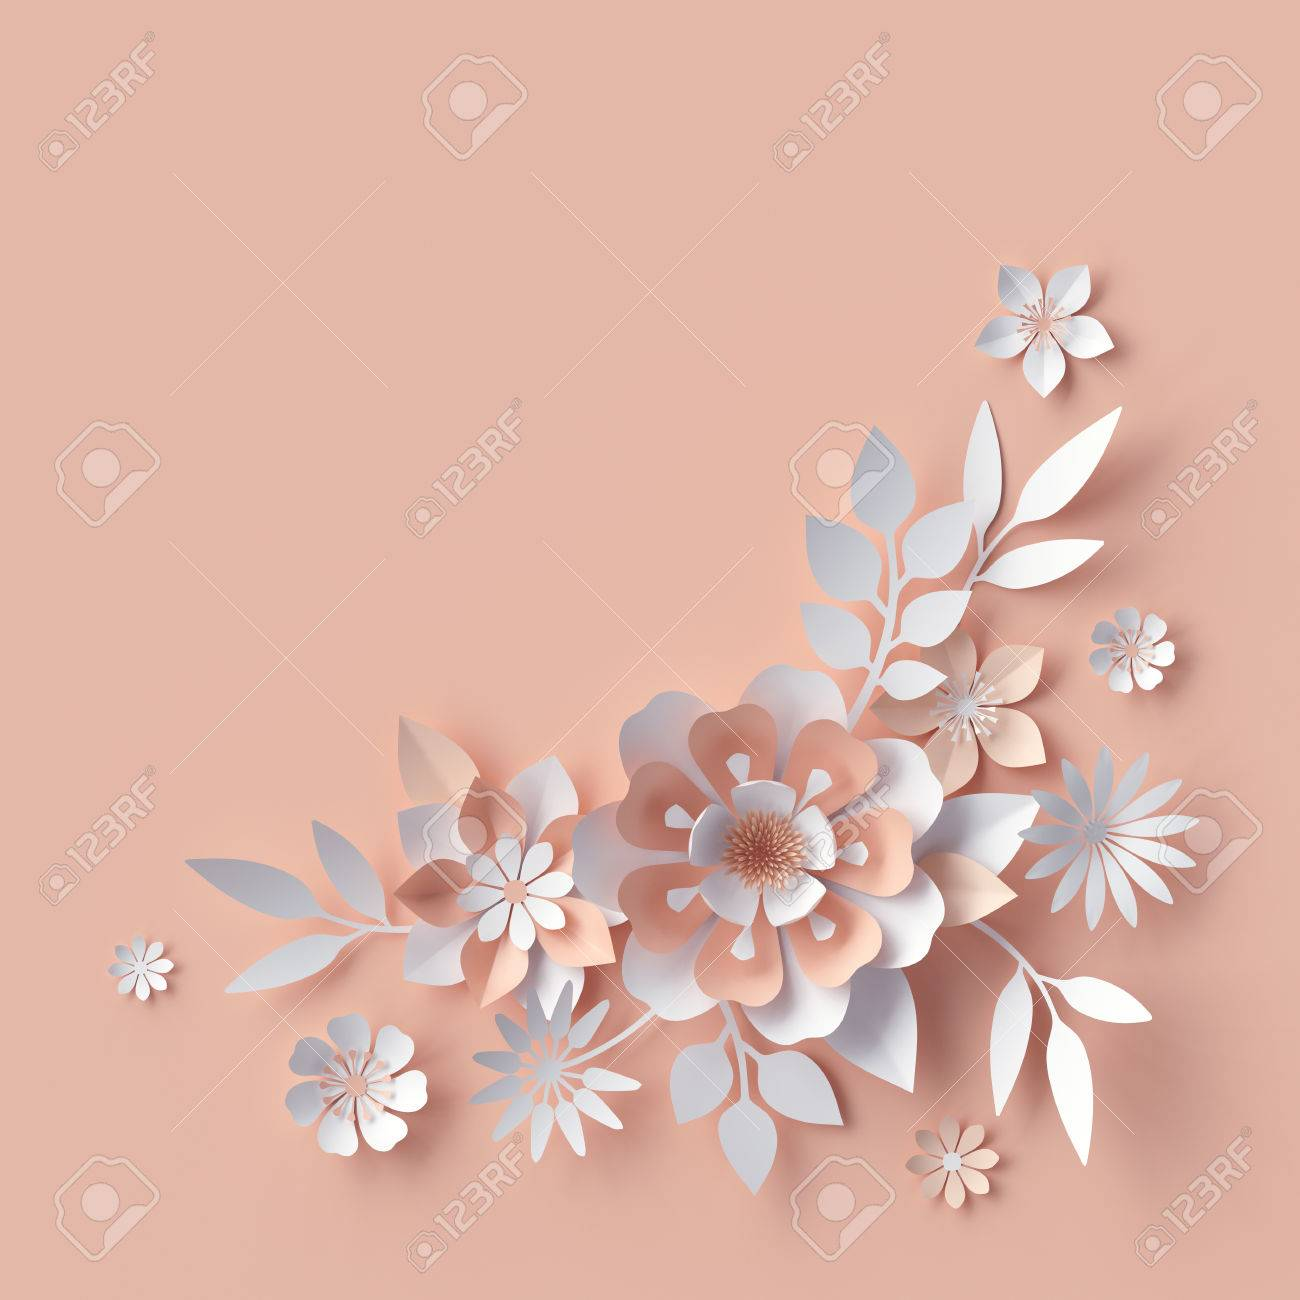 3d render abstract paper flowers decorative floral background 3d render abstract paper flowers decorative floral background greeting card template creative mightylinksfo